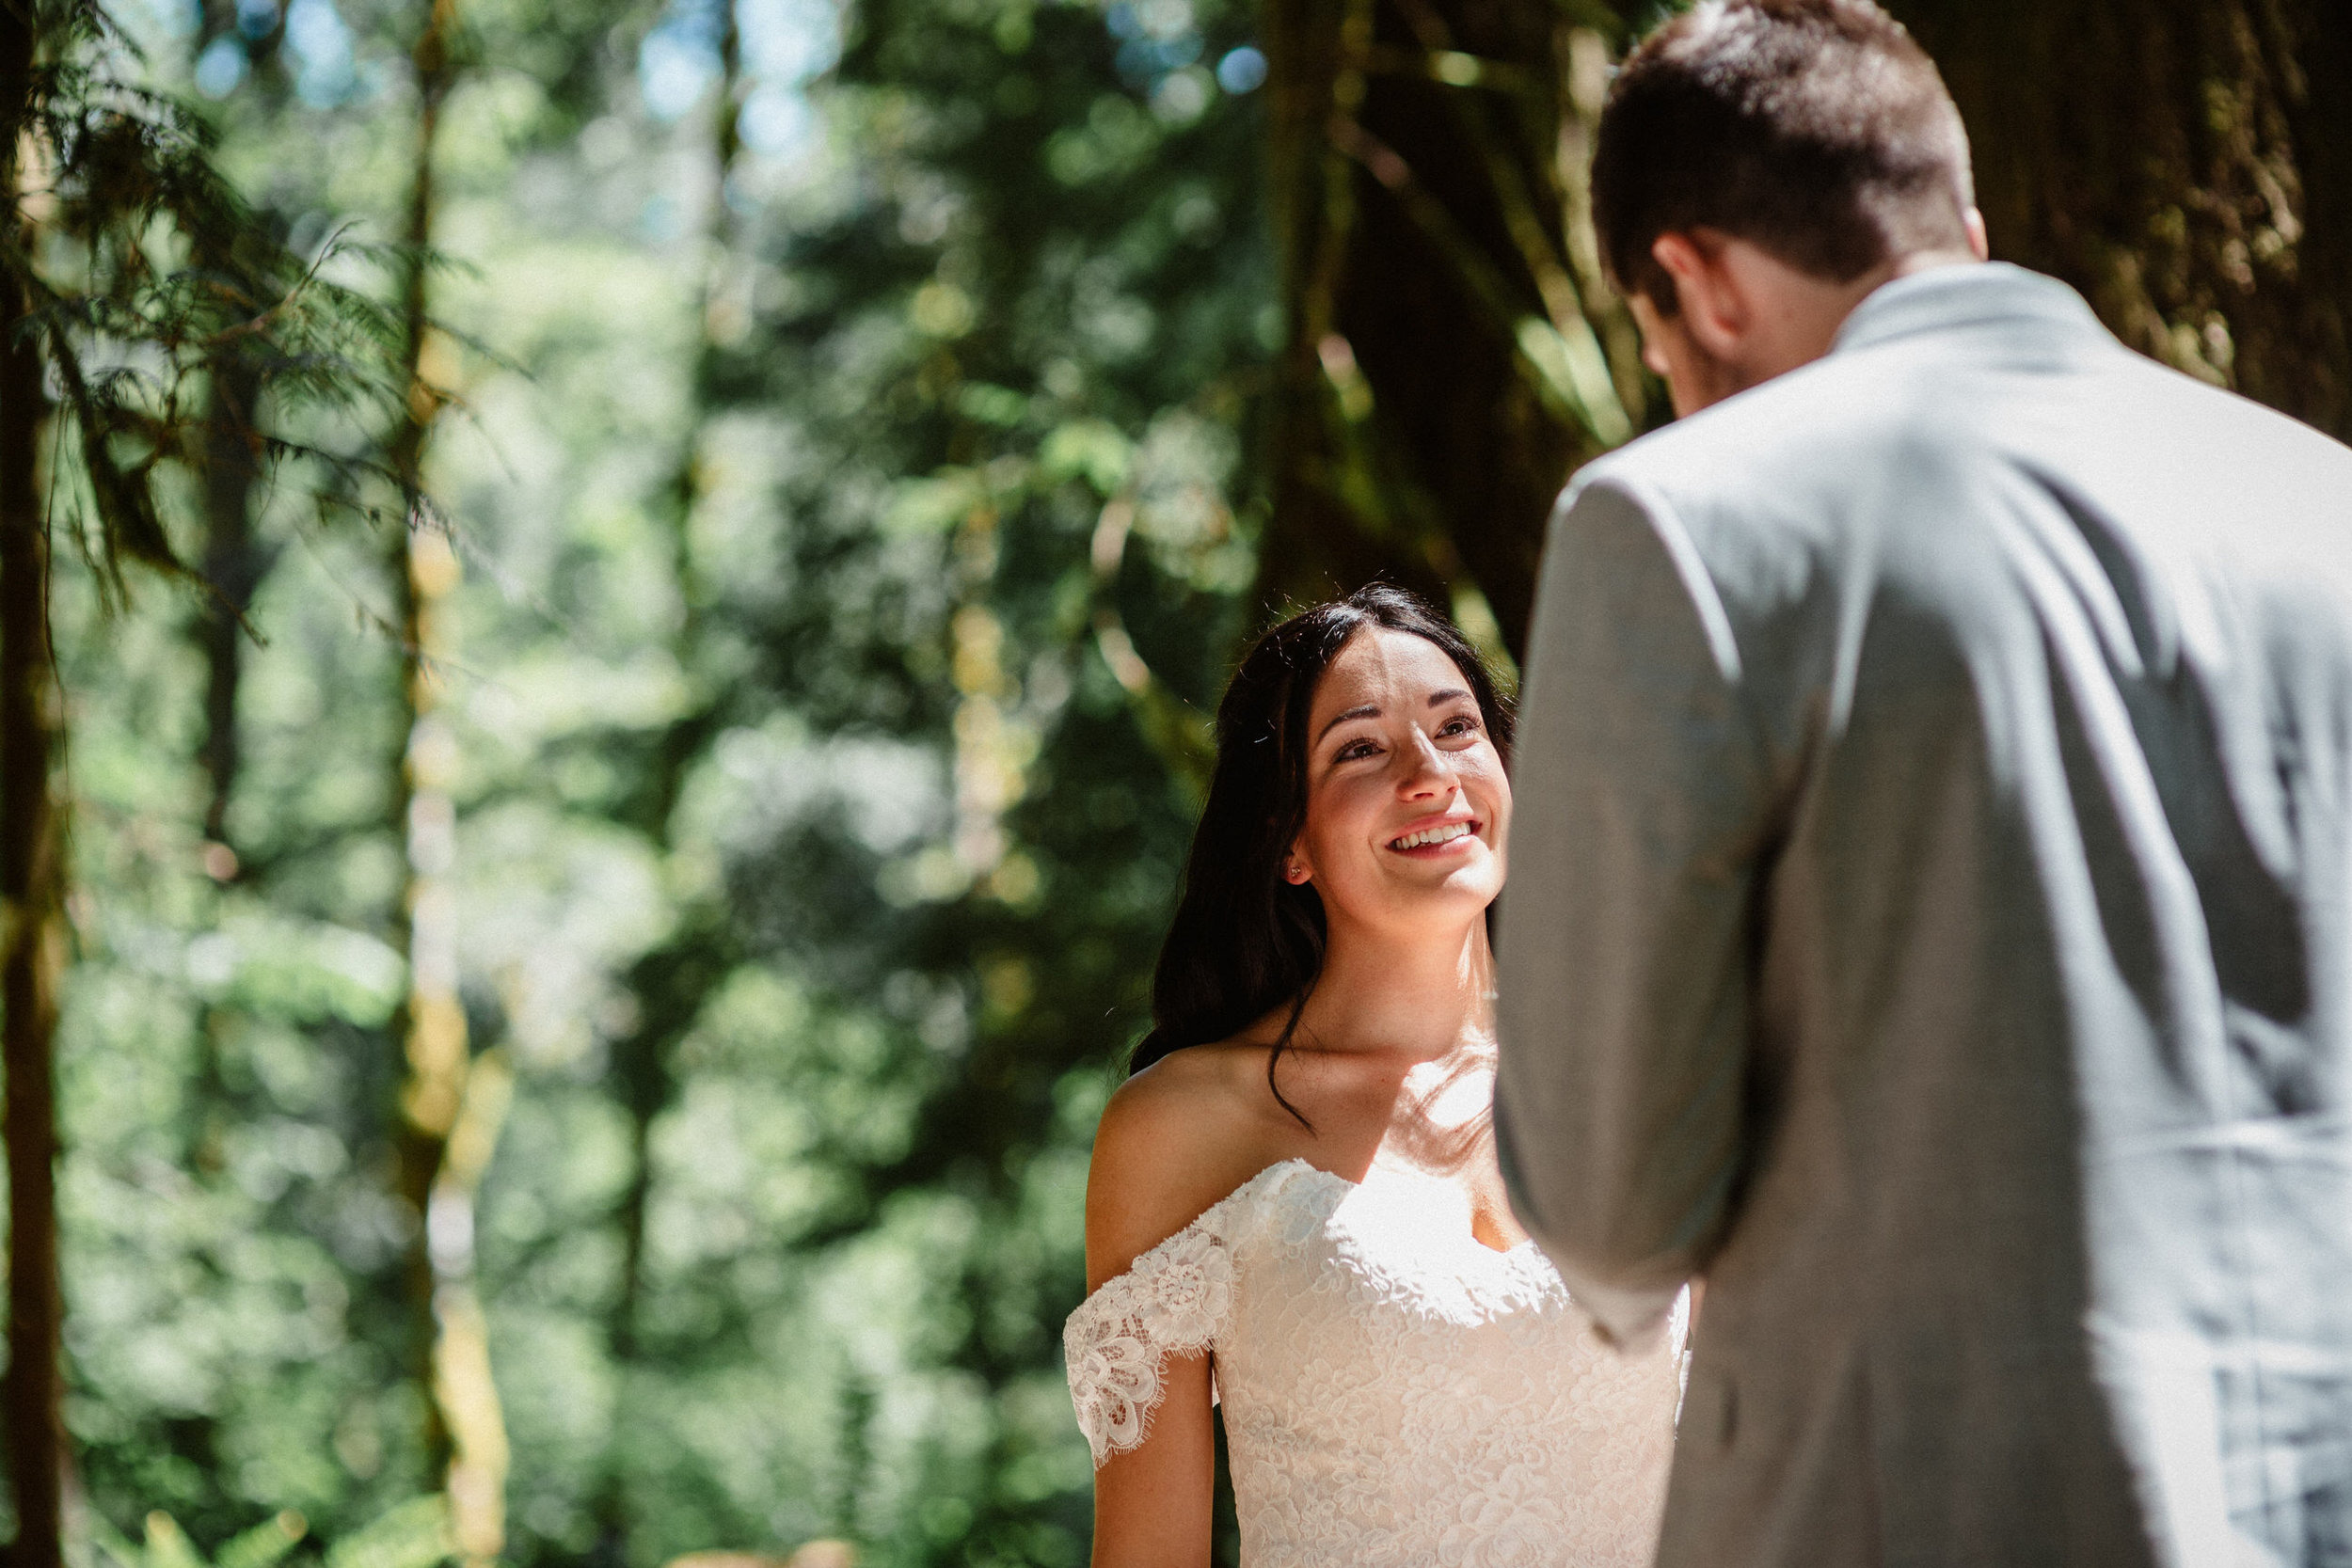 MT Hood Wildwood elopement wedding oregon portland photography0046.JPG